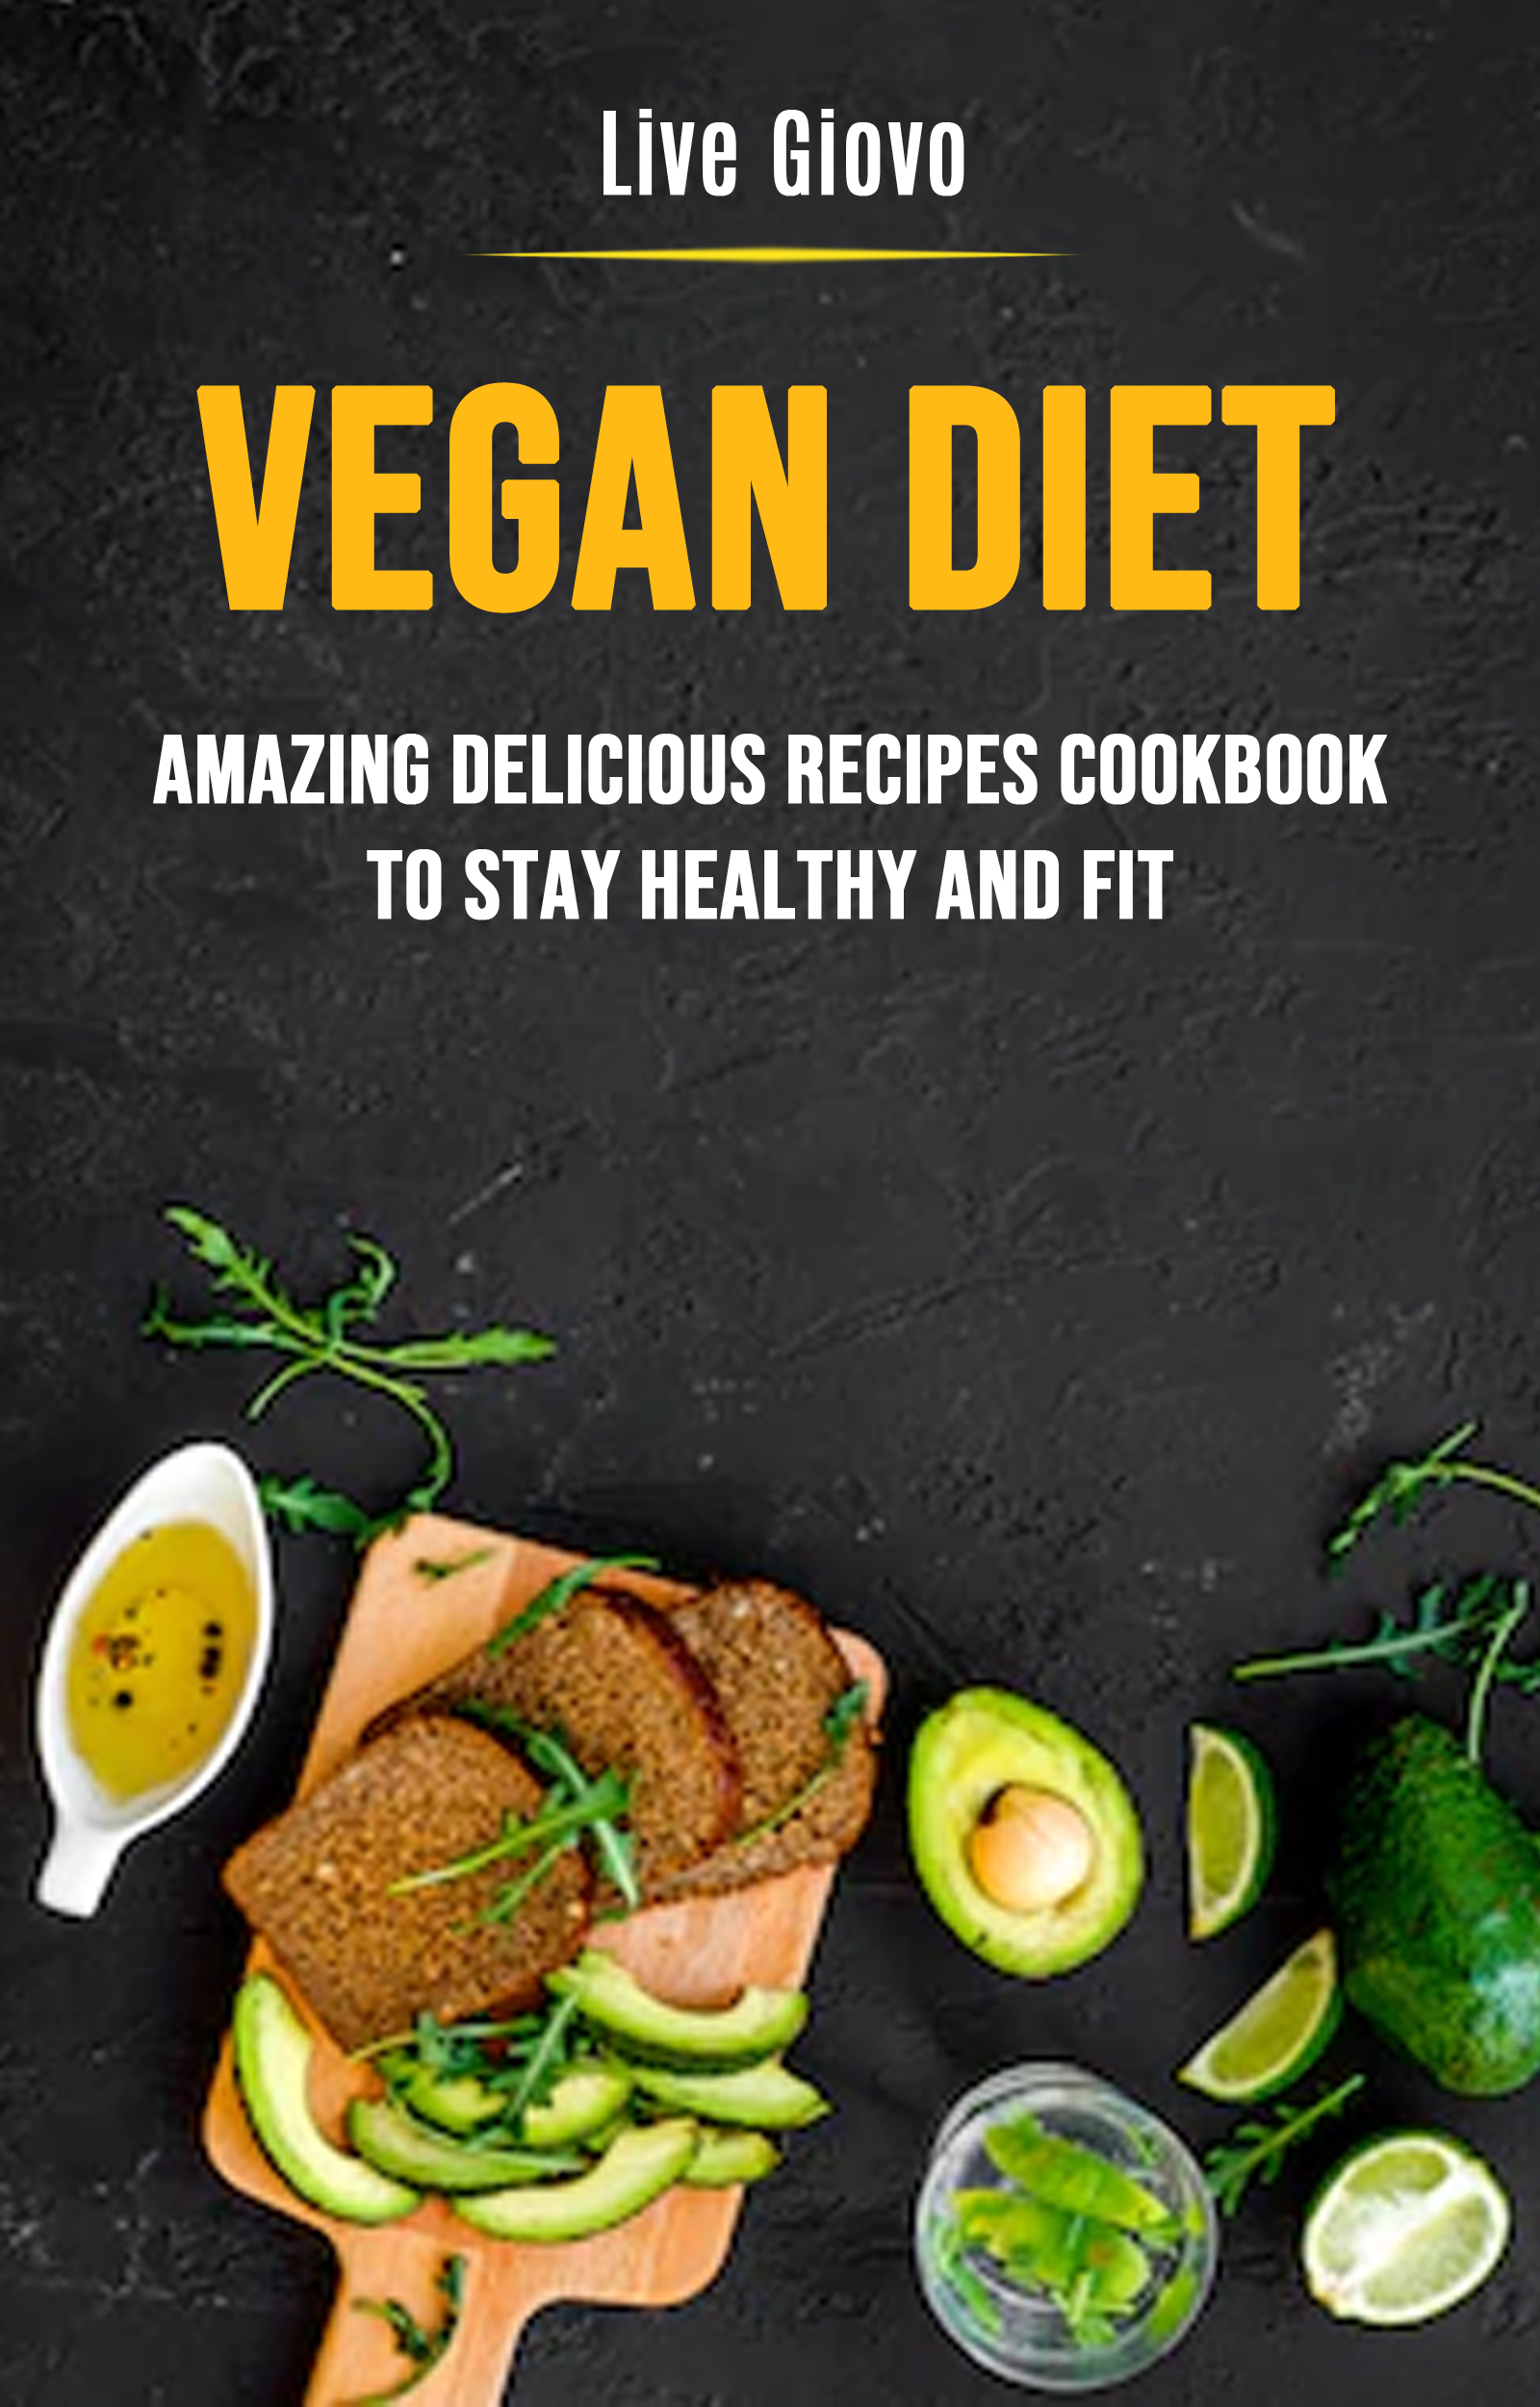 Vegan diet: amazing delicious recipes cookbook to stay healthy and fit